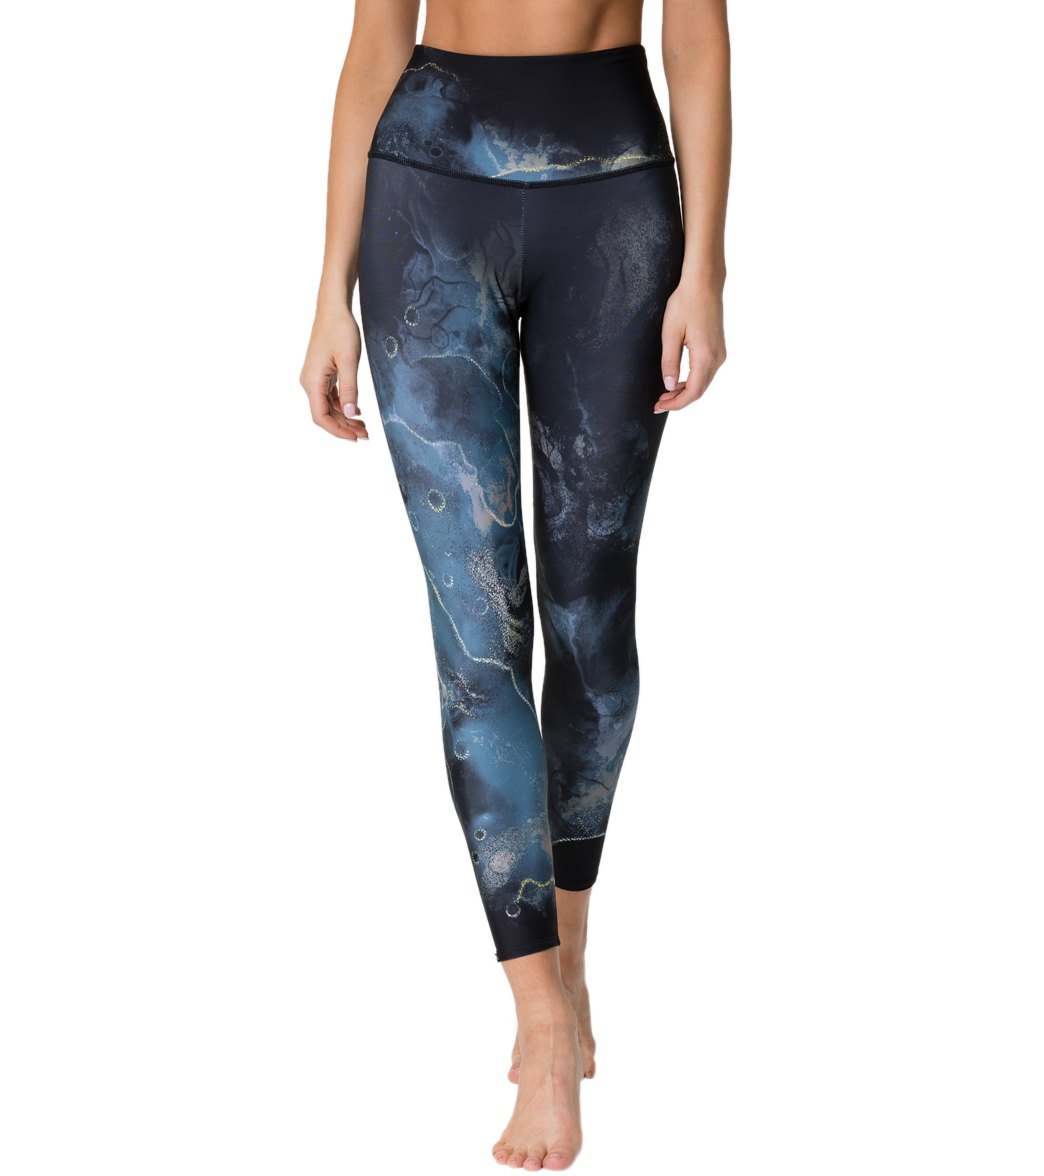 Onzie Graphic High Waisted 7/8 Yoga Leggings - Element Spandex